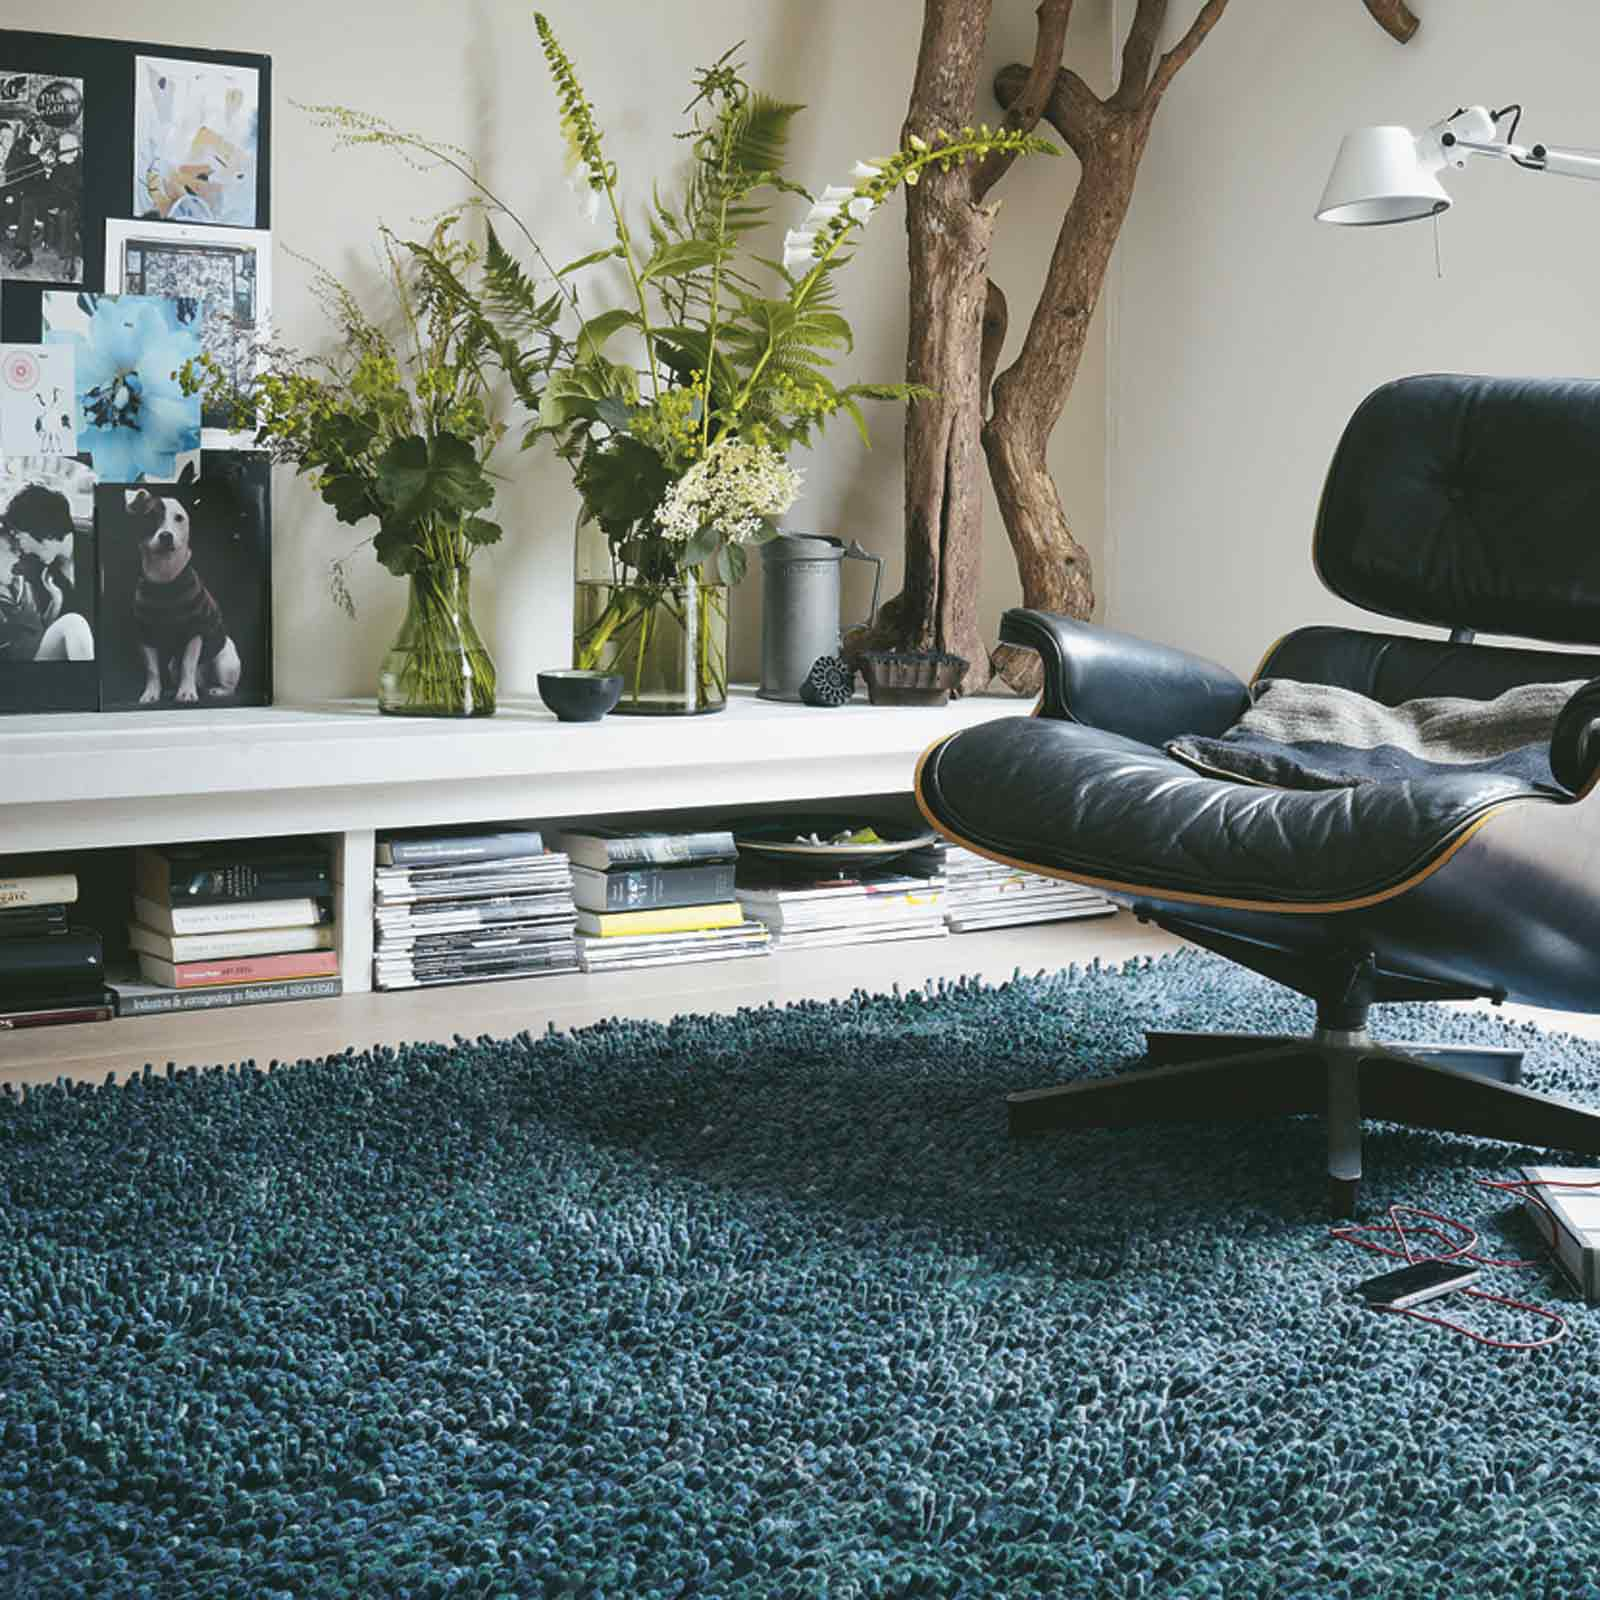 steel rugs 78908 blue green by brink and campman free uk delivery the rug seller. Black Bedroom Furniture Sets. Home Design Ideas